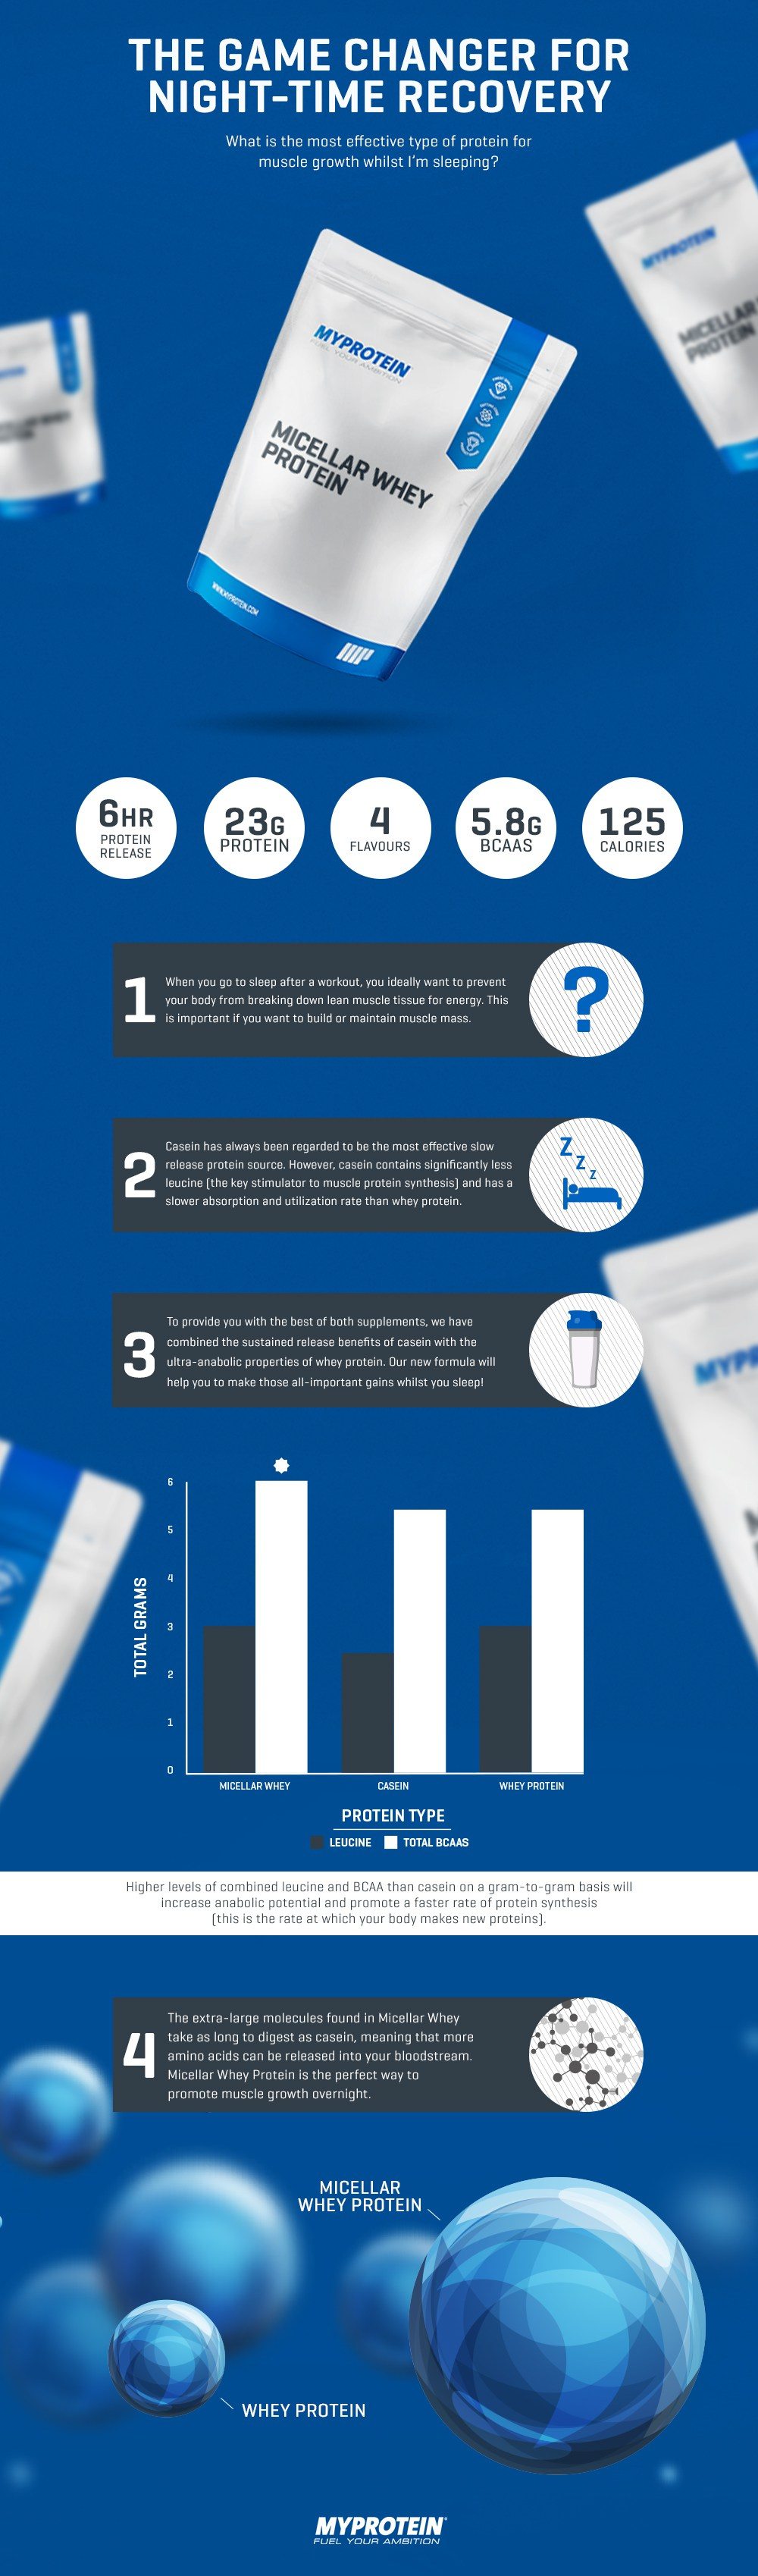 Protein-Infographic-7-2